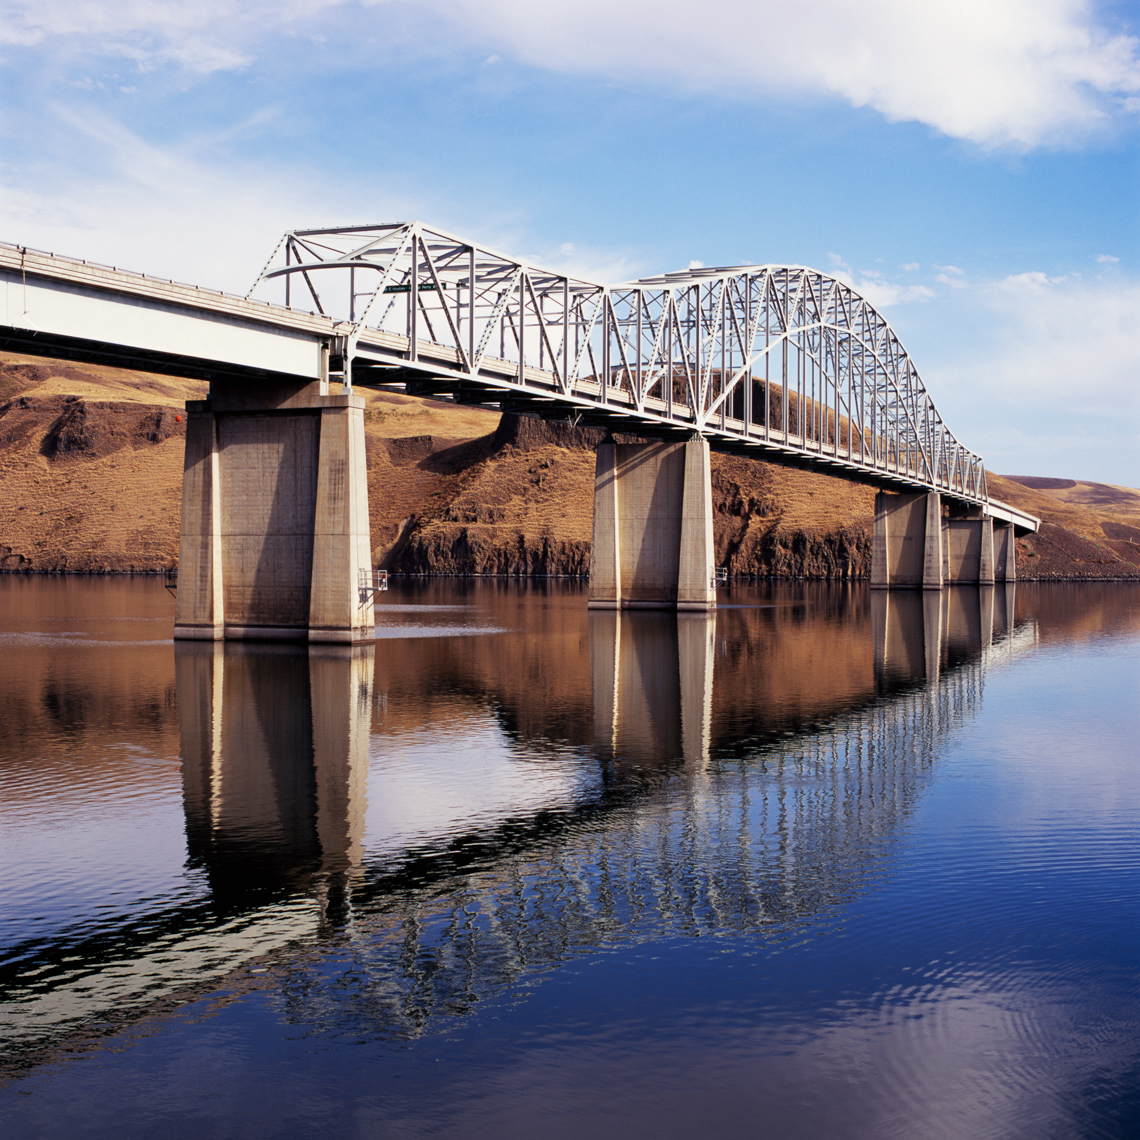 Steel and concrete highway bridge over river. Transportation engineering construction industry.